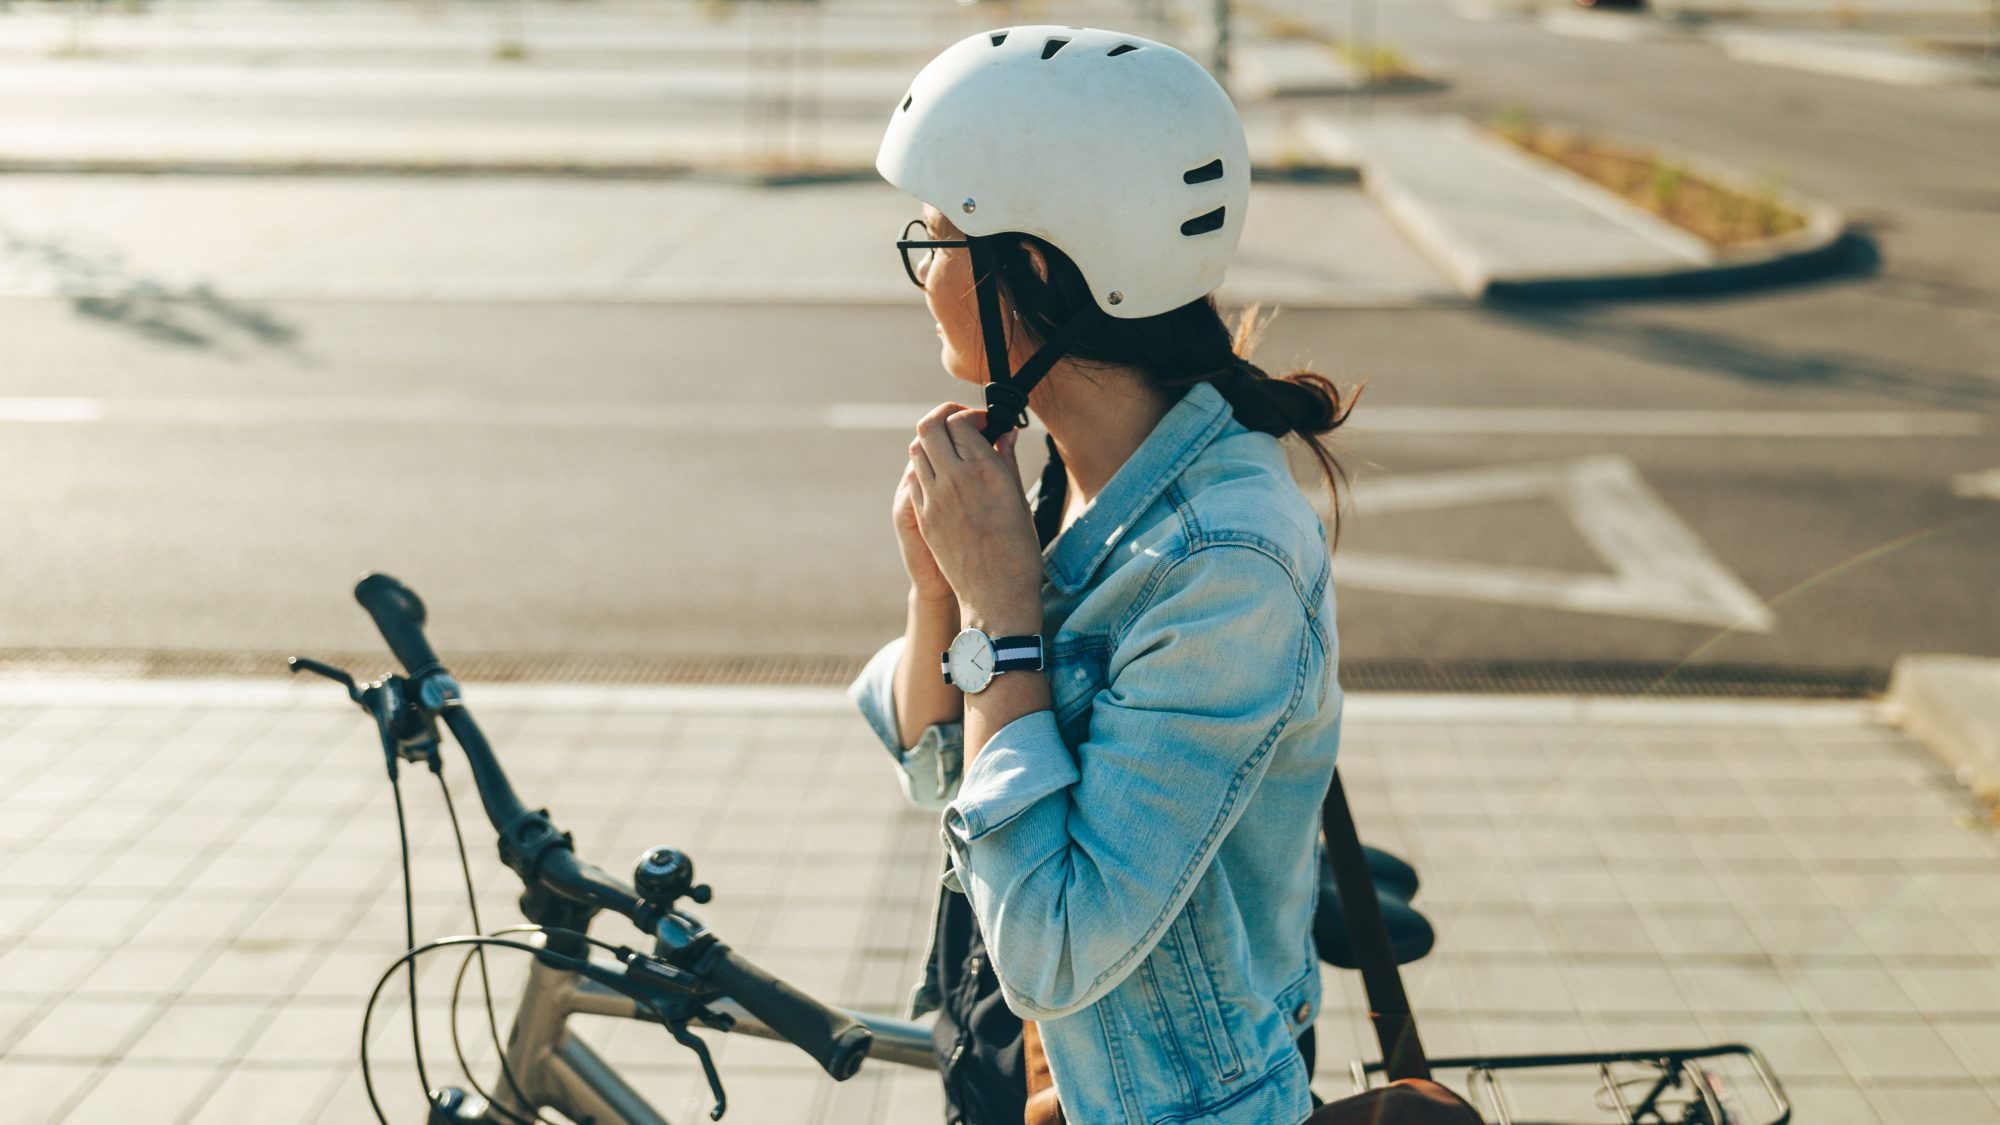 Biking etiquette and safety tips - woman on bike wearing helmet